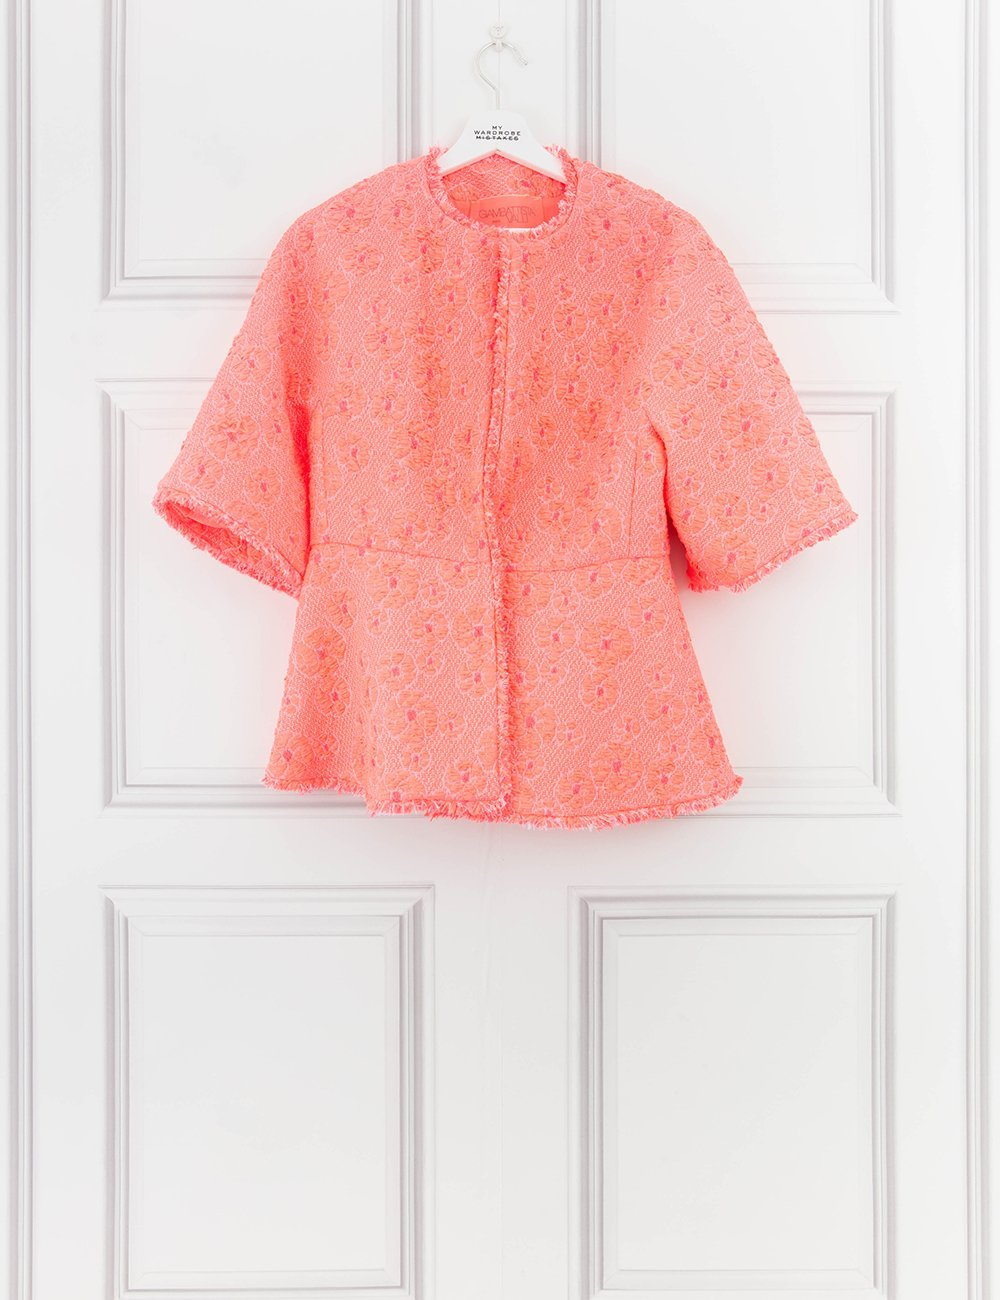 GIAMBATTISTA VALLI CLOTHING Flared Cloque Jacket- My Wardrobe Mistakes